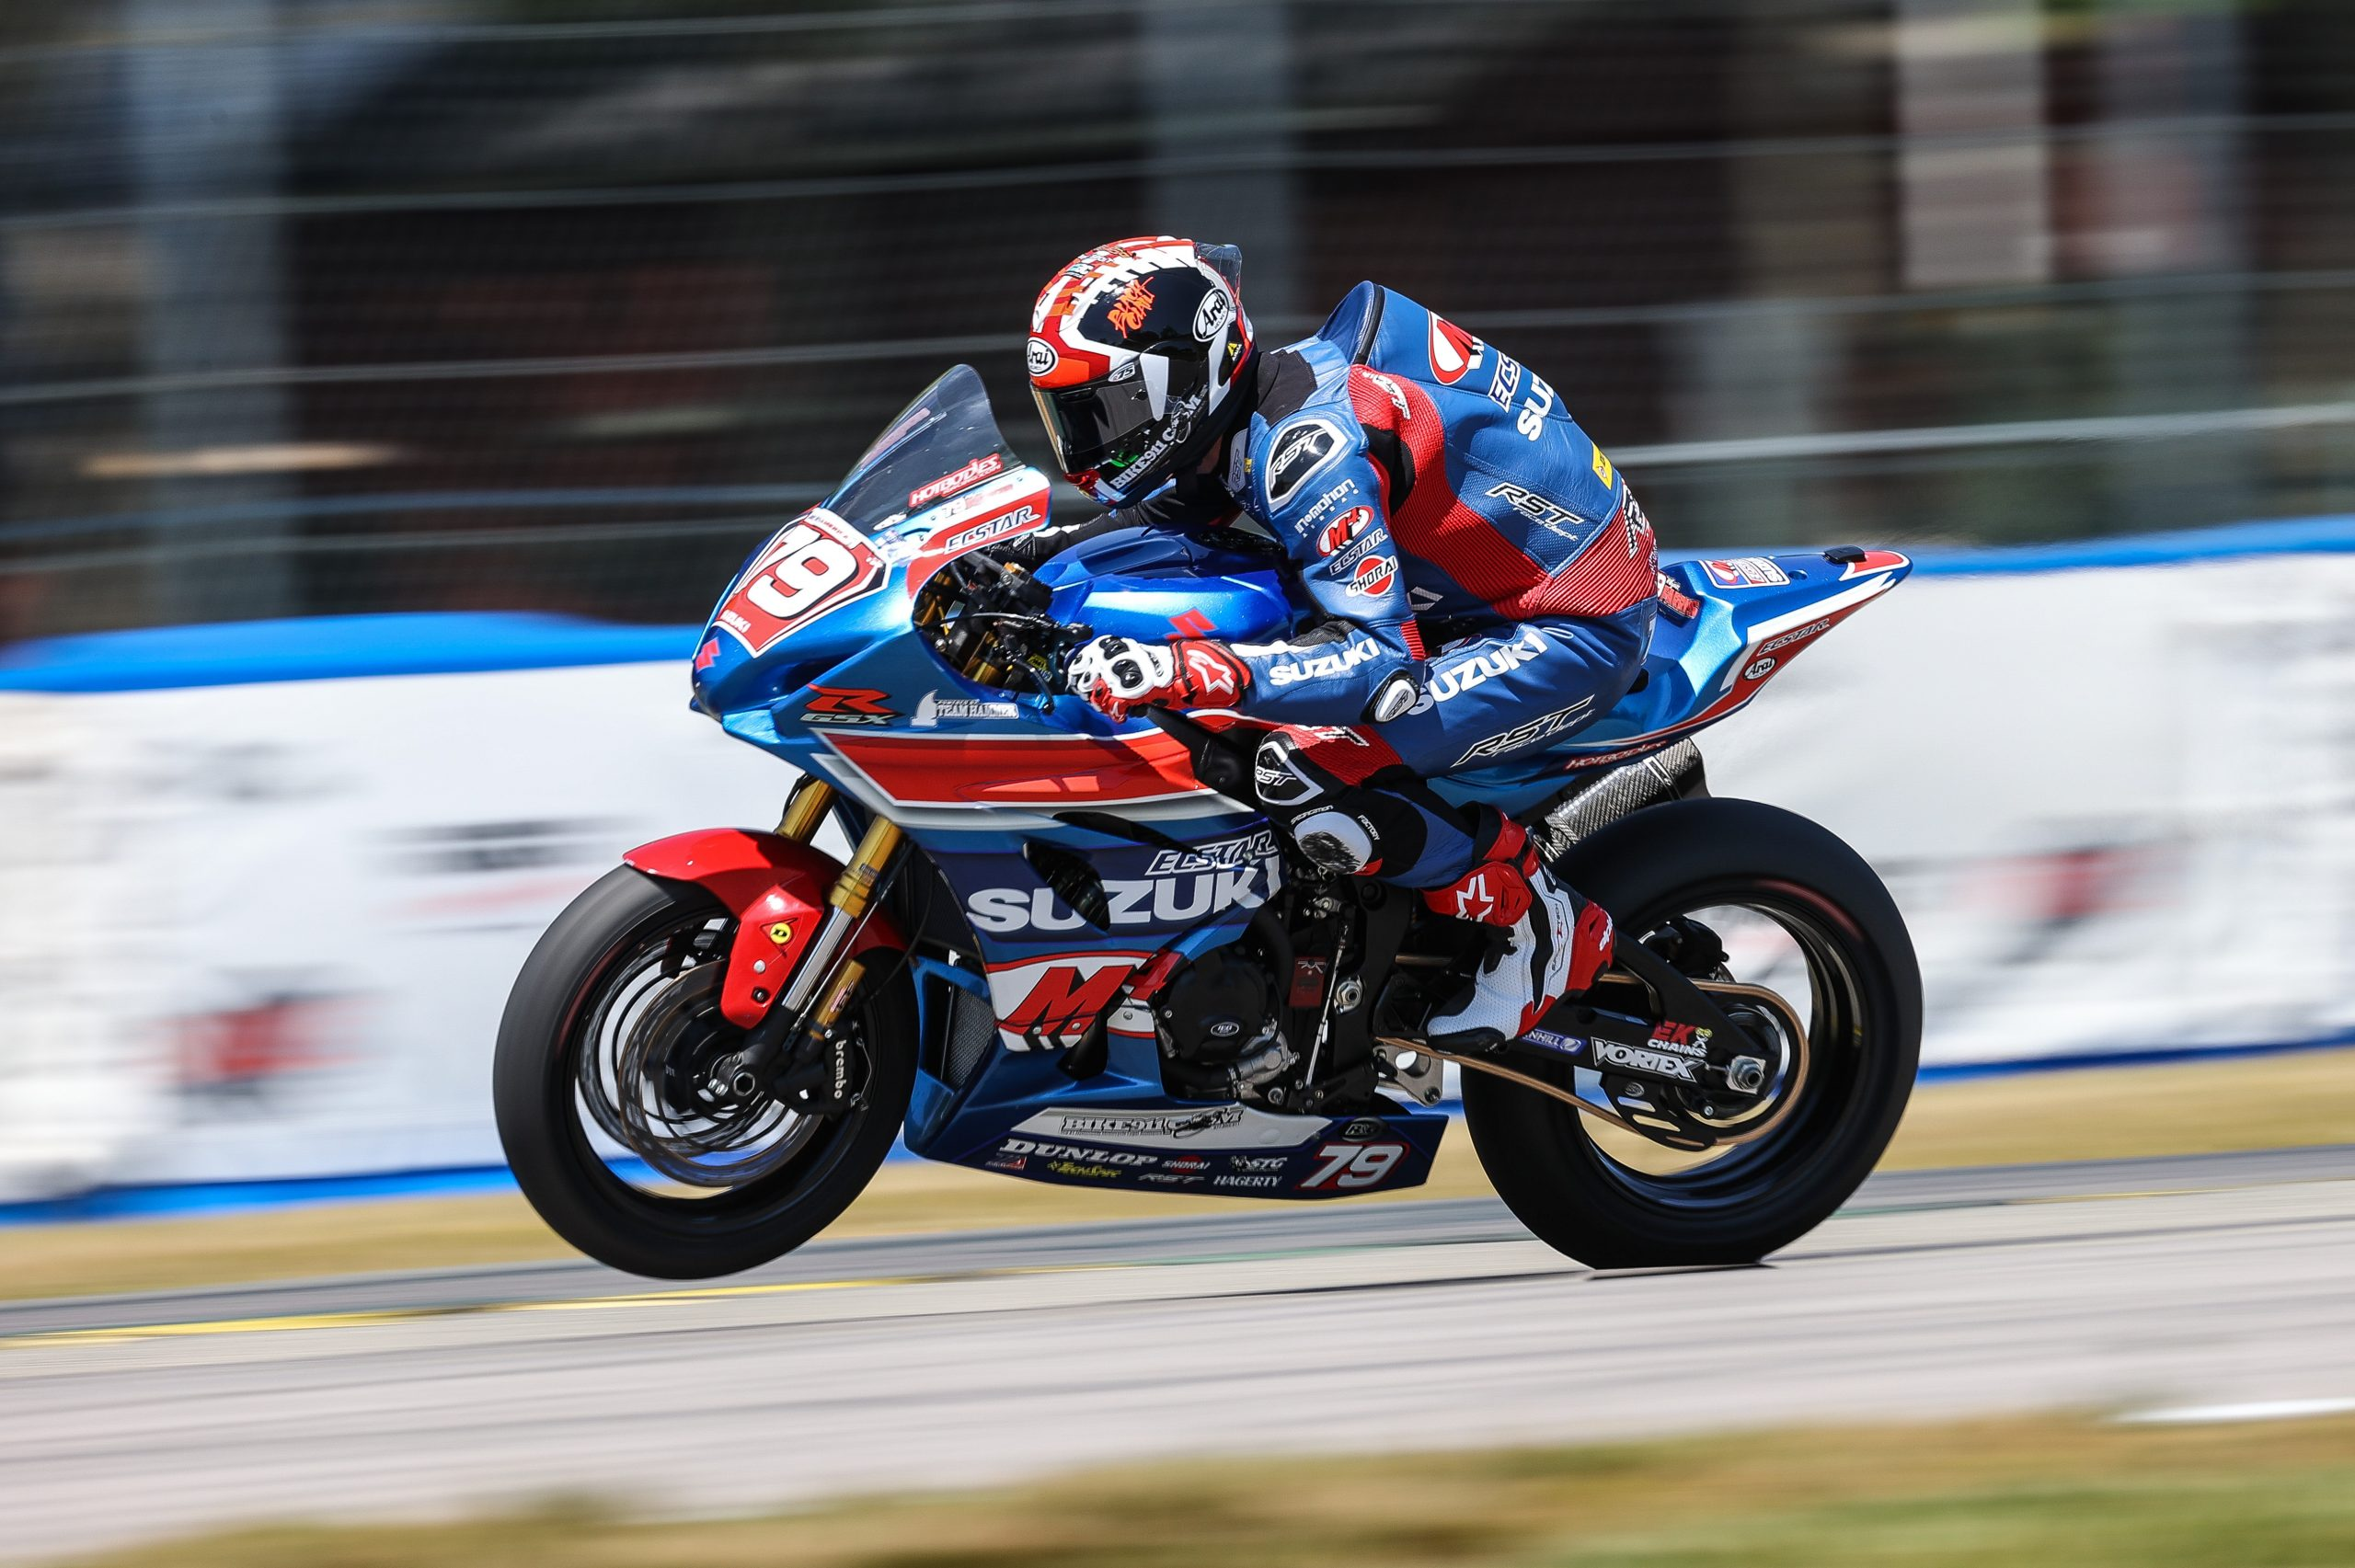 210524 Wyatt Farris (79) rode well and delivered two points scoring results on his GSX-R1000